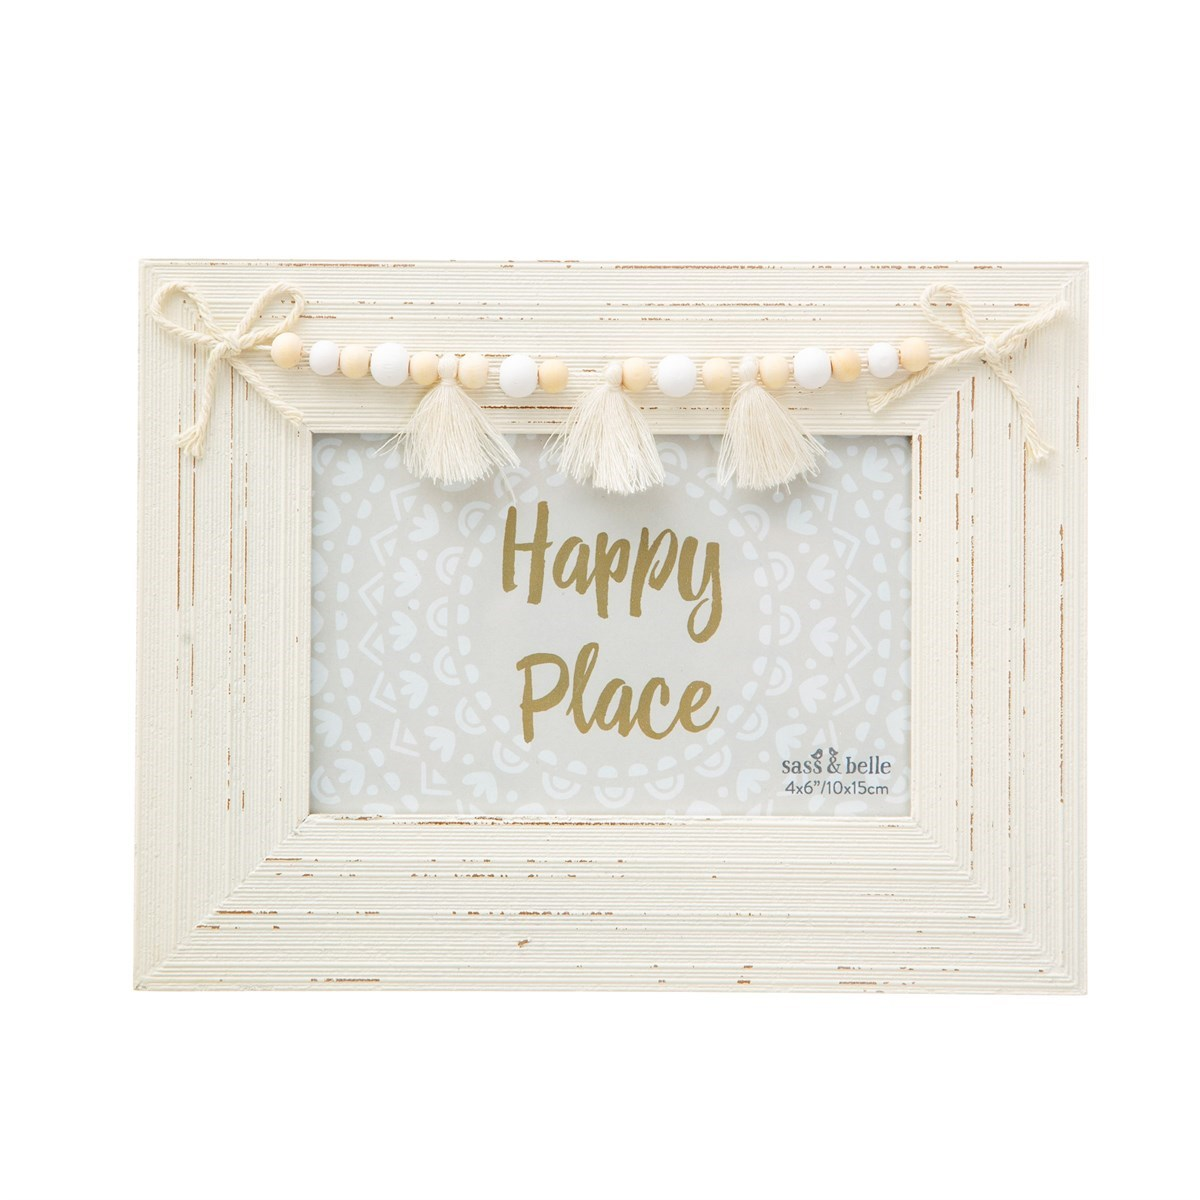 White /& Gold Wooden Box Picture Photo Frame 6 x 4 Decorative Washing Line Pegs